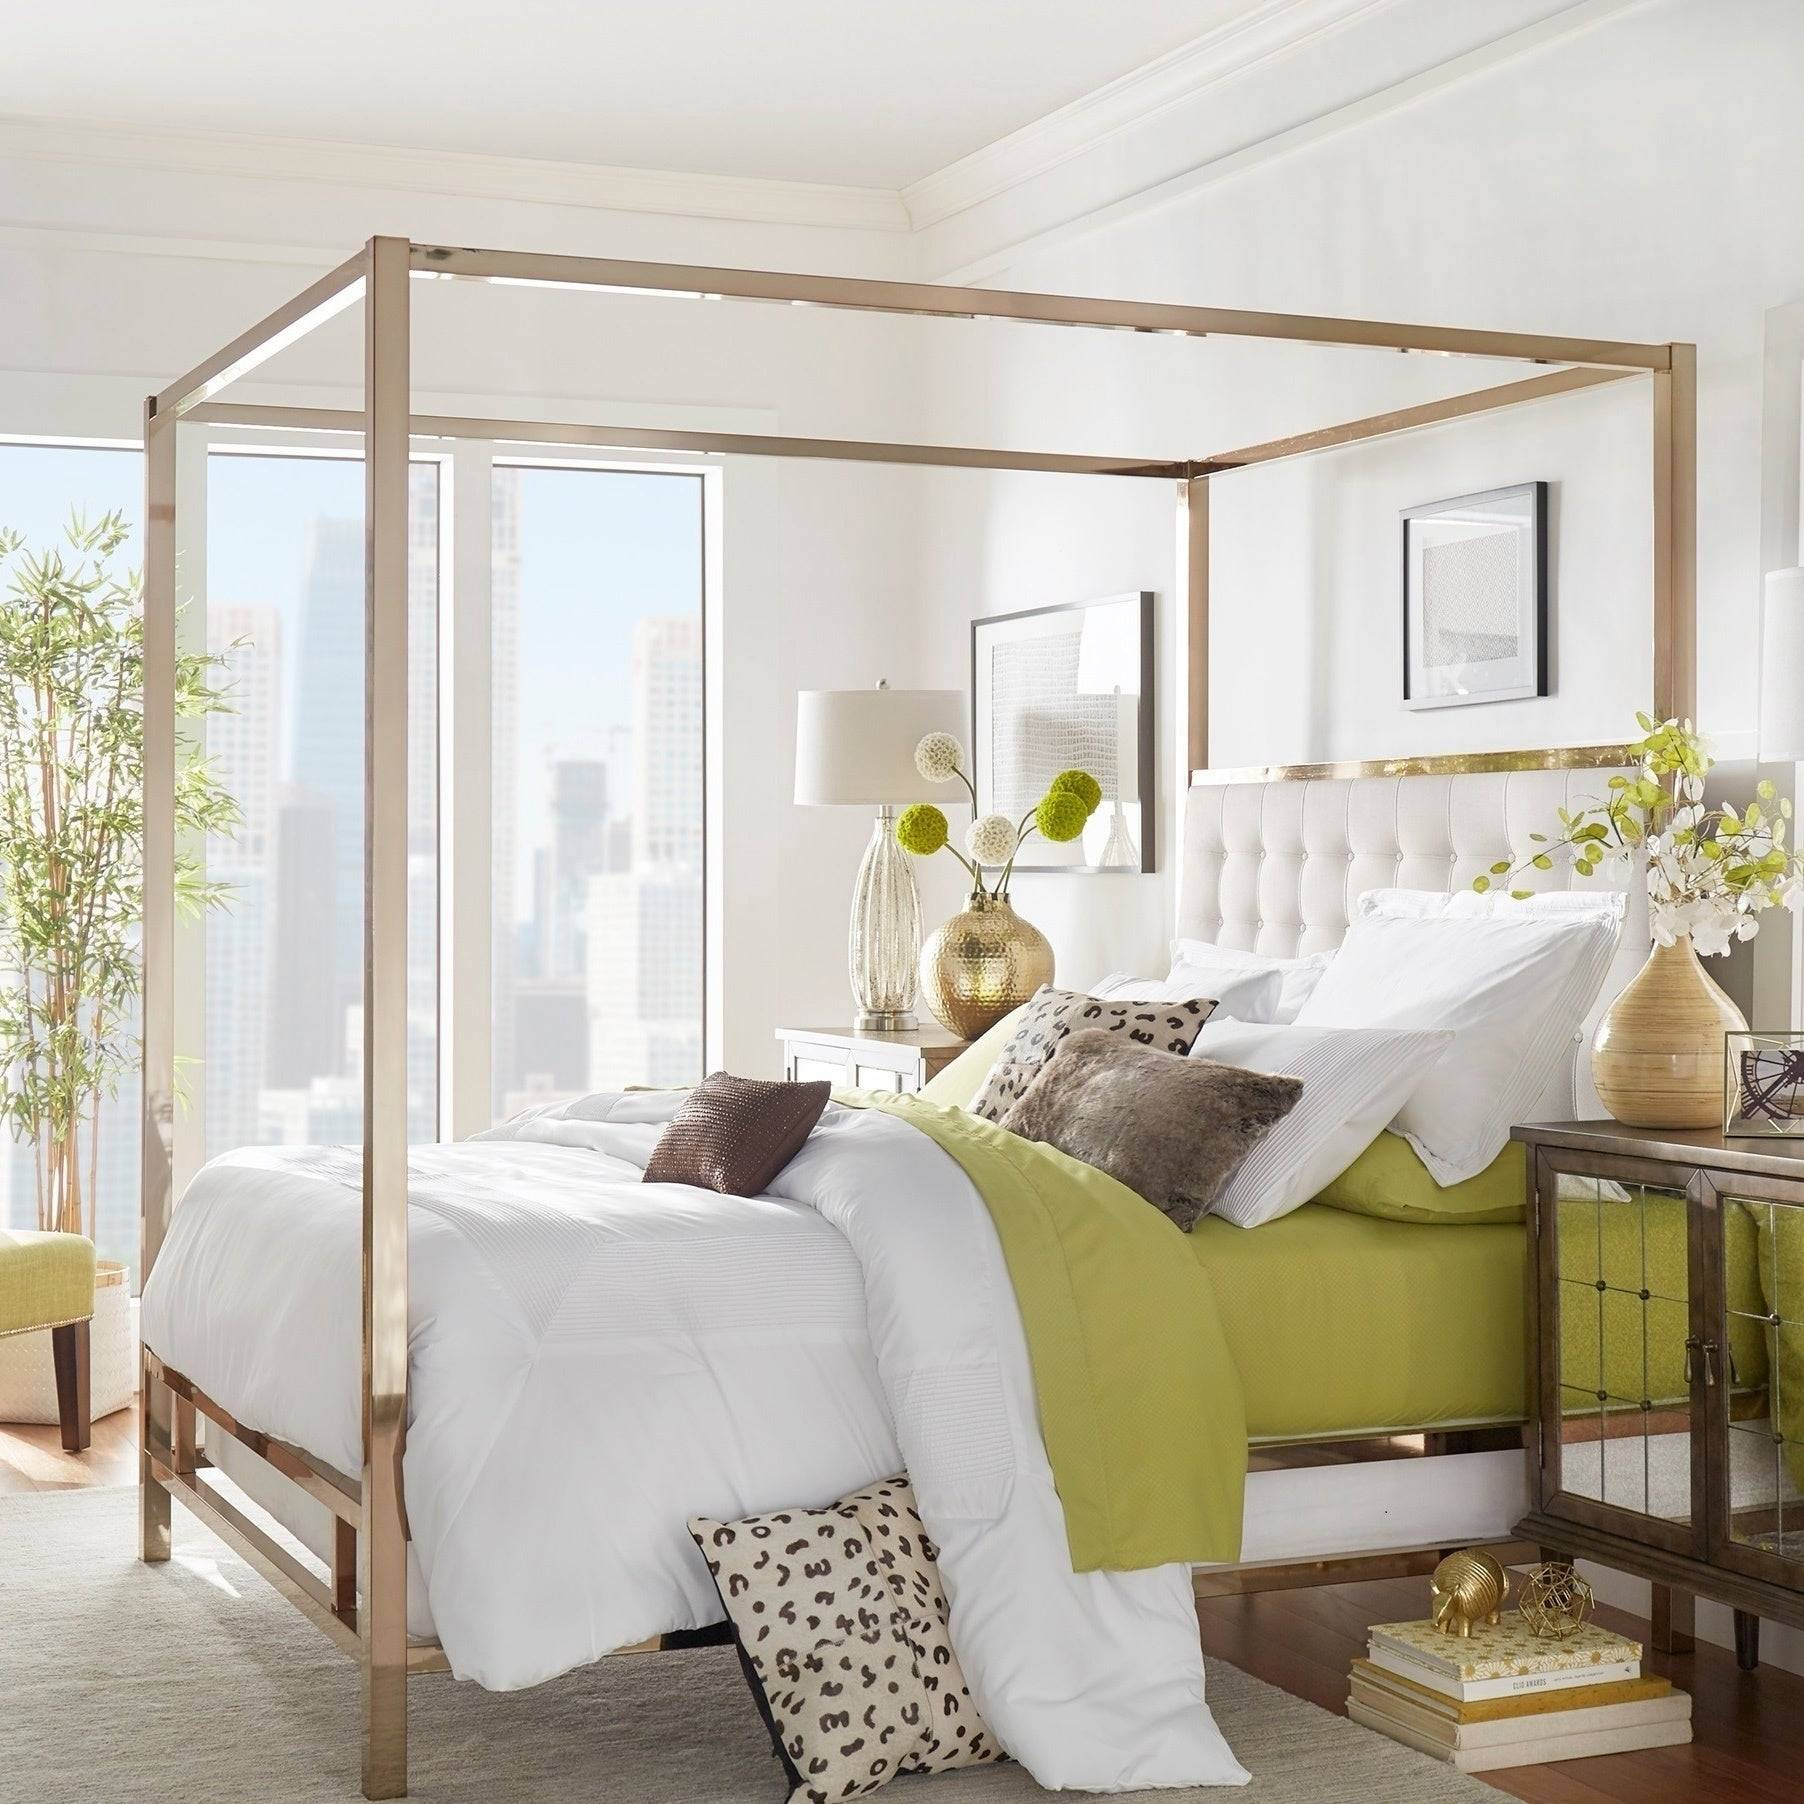 Solivita Champagne Gold Queen size Metal Canopy Bed by iNSPIRE Q Bold a925cb73 48de 4bbc a9e3 0fd e155